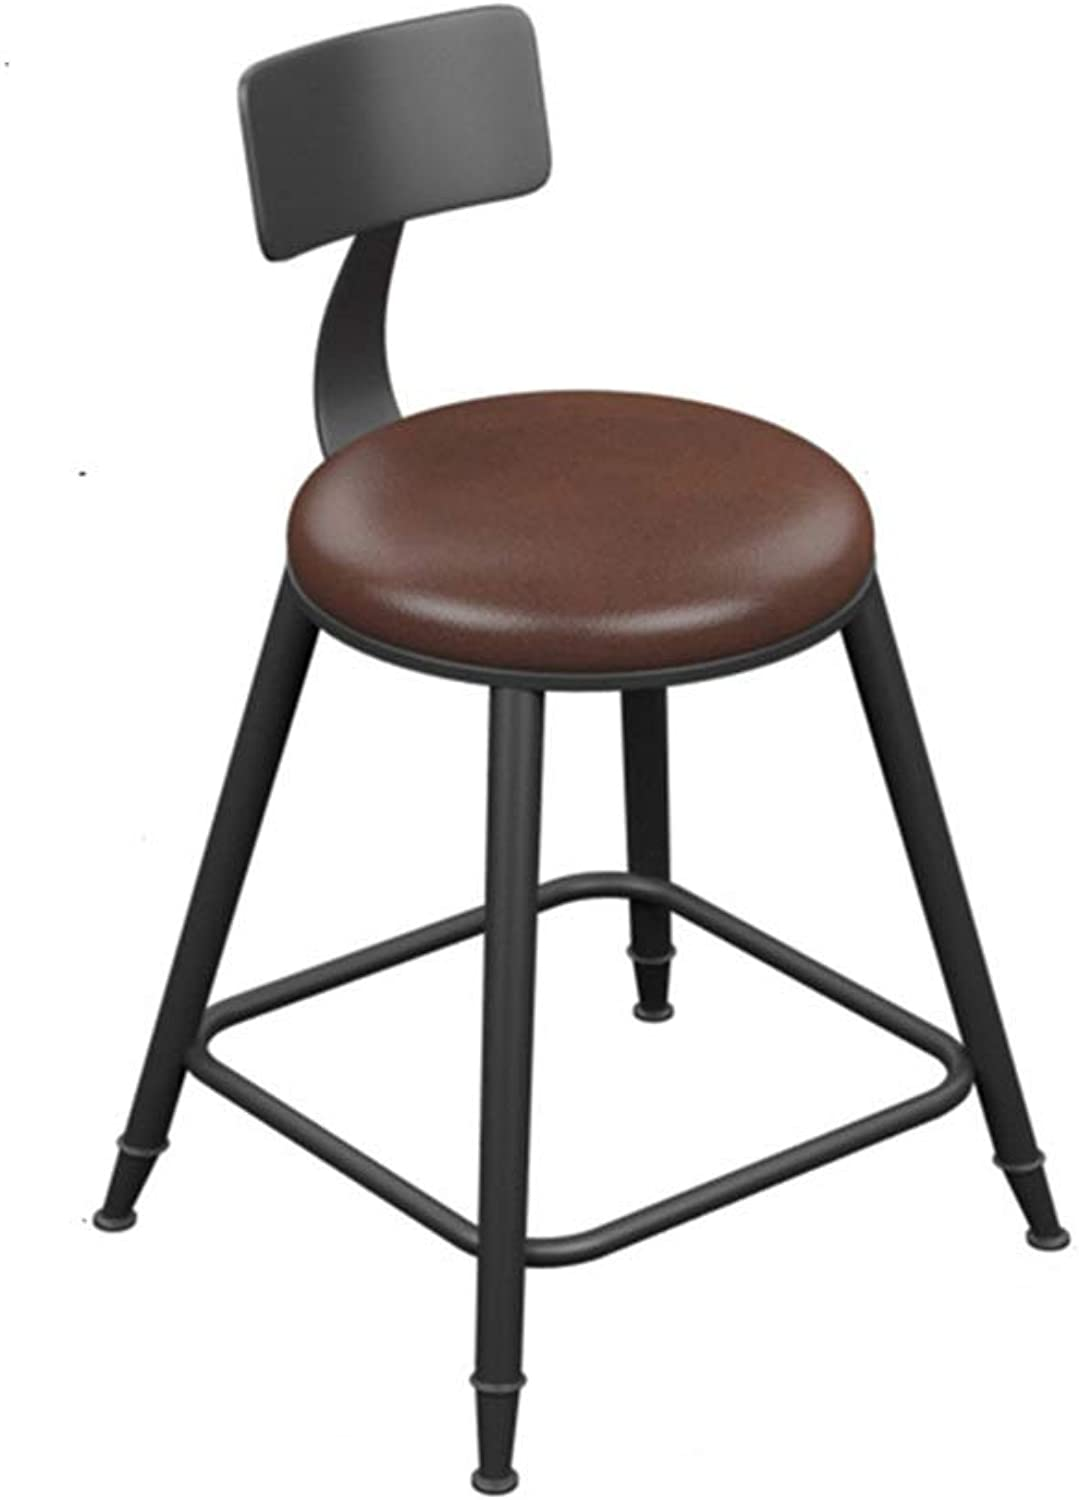 Retro Iron Art Bar Stool High Leg Chairs Modern Simple Kitchen Household Seat Backrest Design Sturdy Non-Slip 0522A (color   with backrest, Size   45cm high)